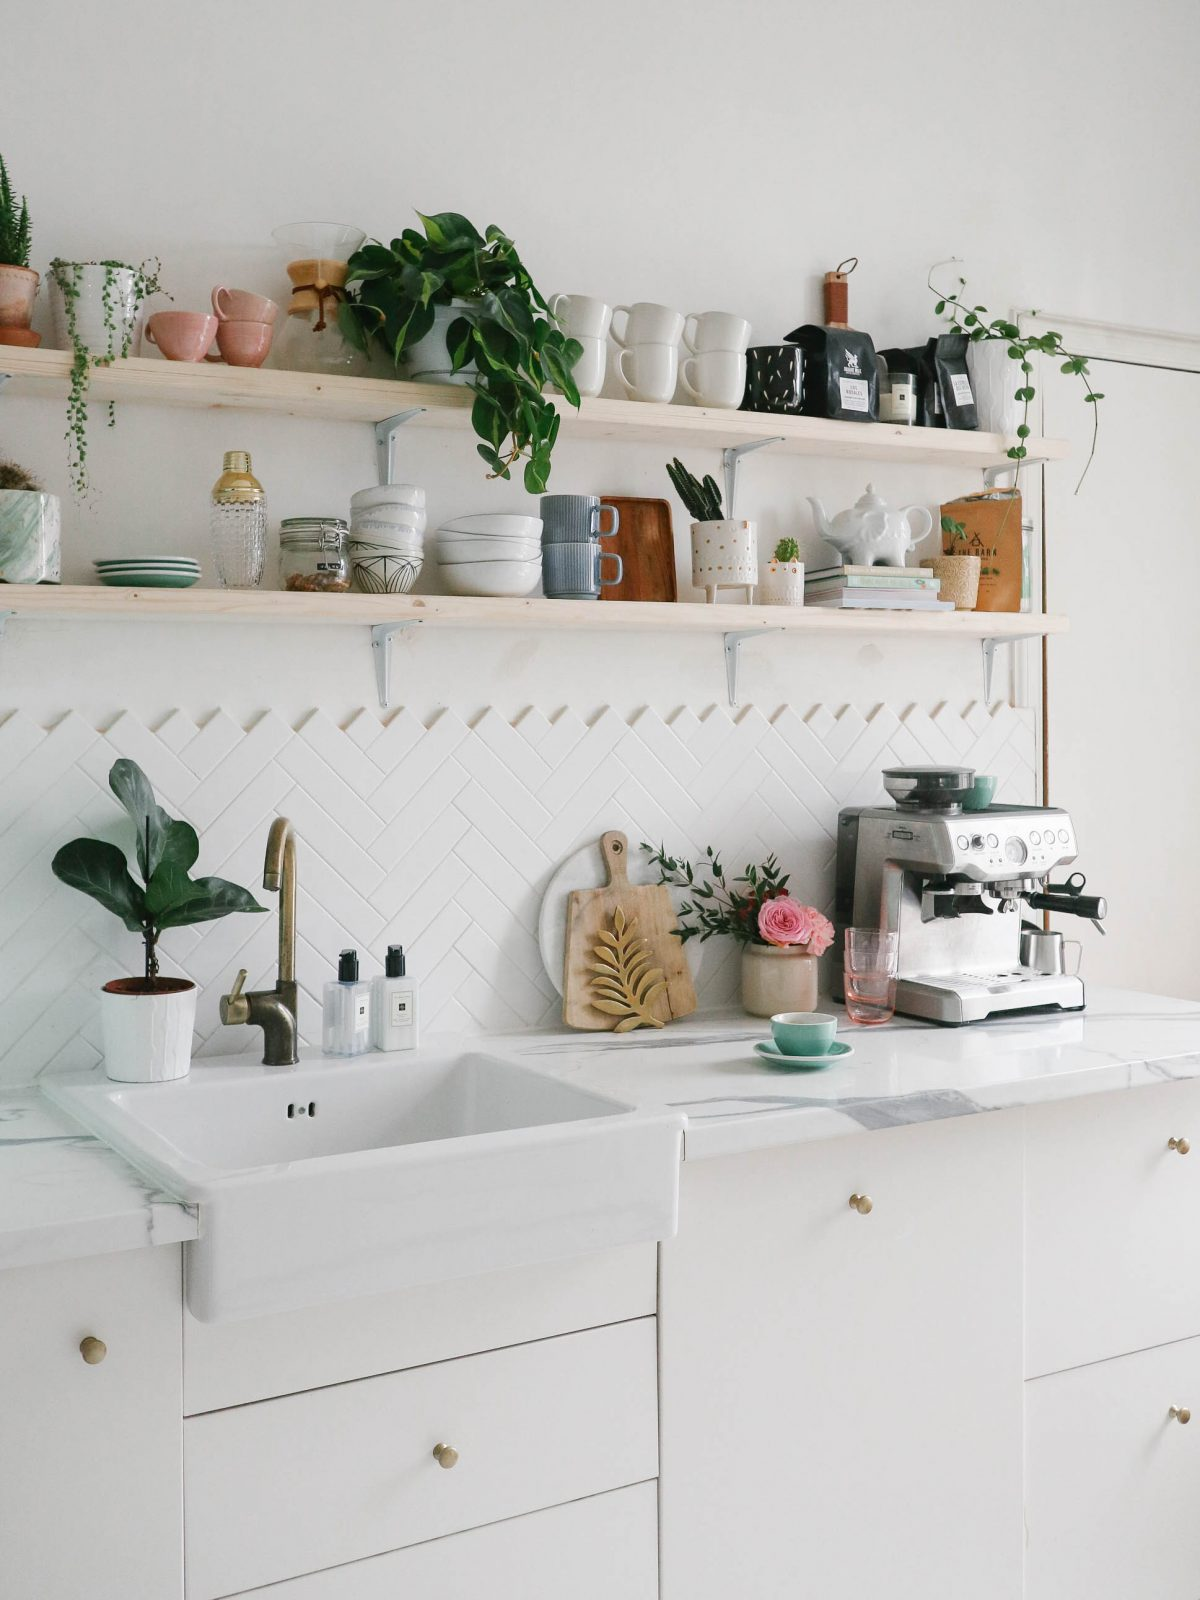 How I Refreshed Our Kitchen Shelves.